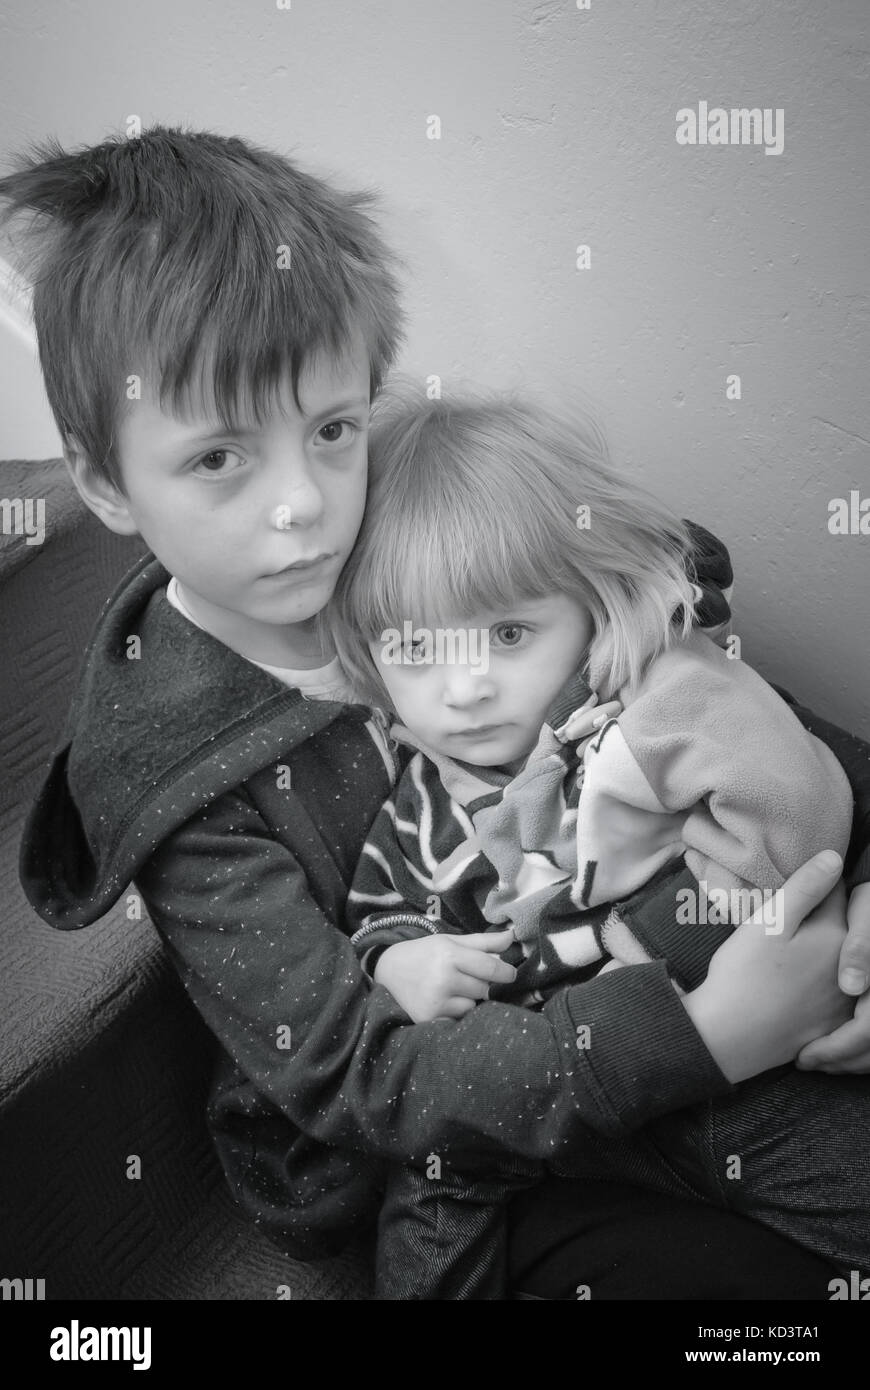 A conceptual black and white image of two siblings  representing a range of concepts such as poverty, abuse,loneliness. - Stock Image